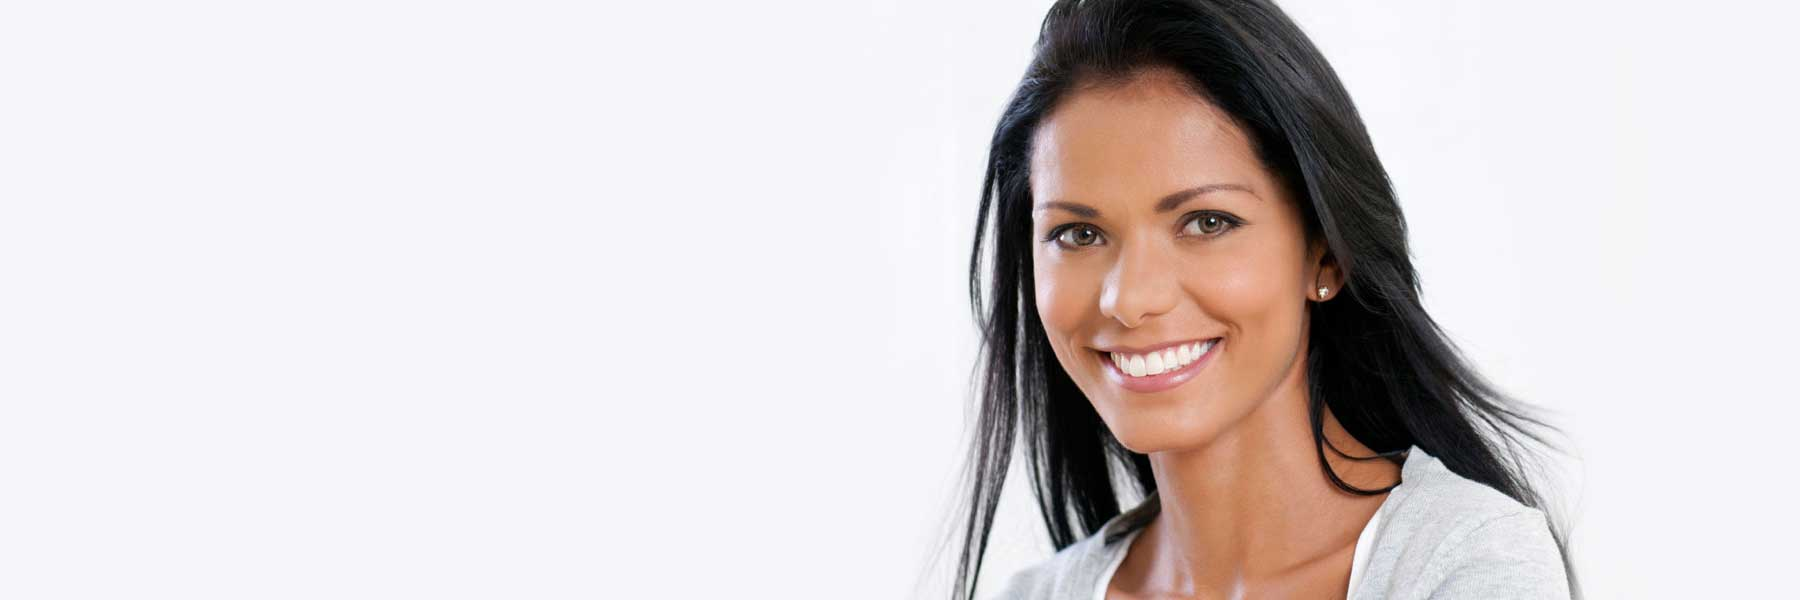 Invisalign in Barrie ON banner image